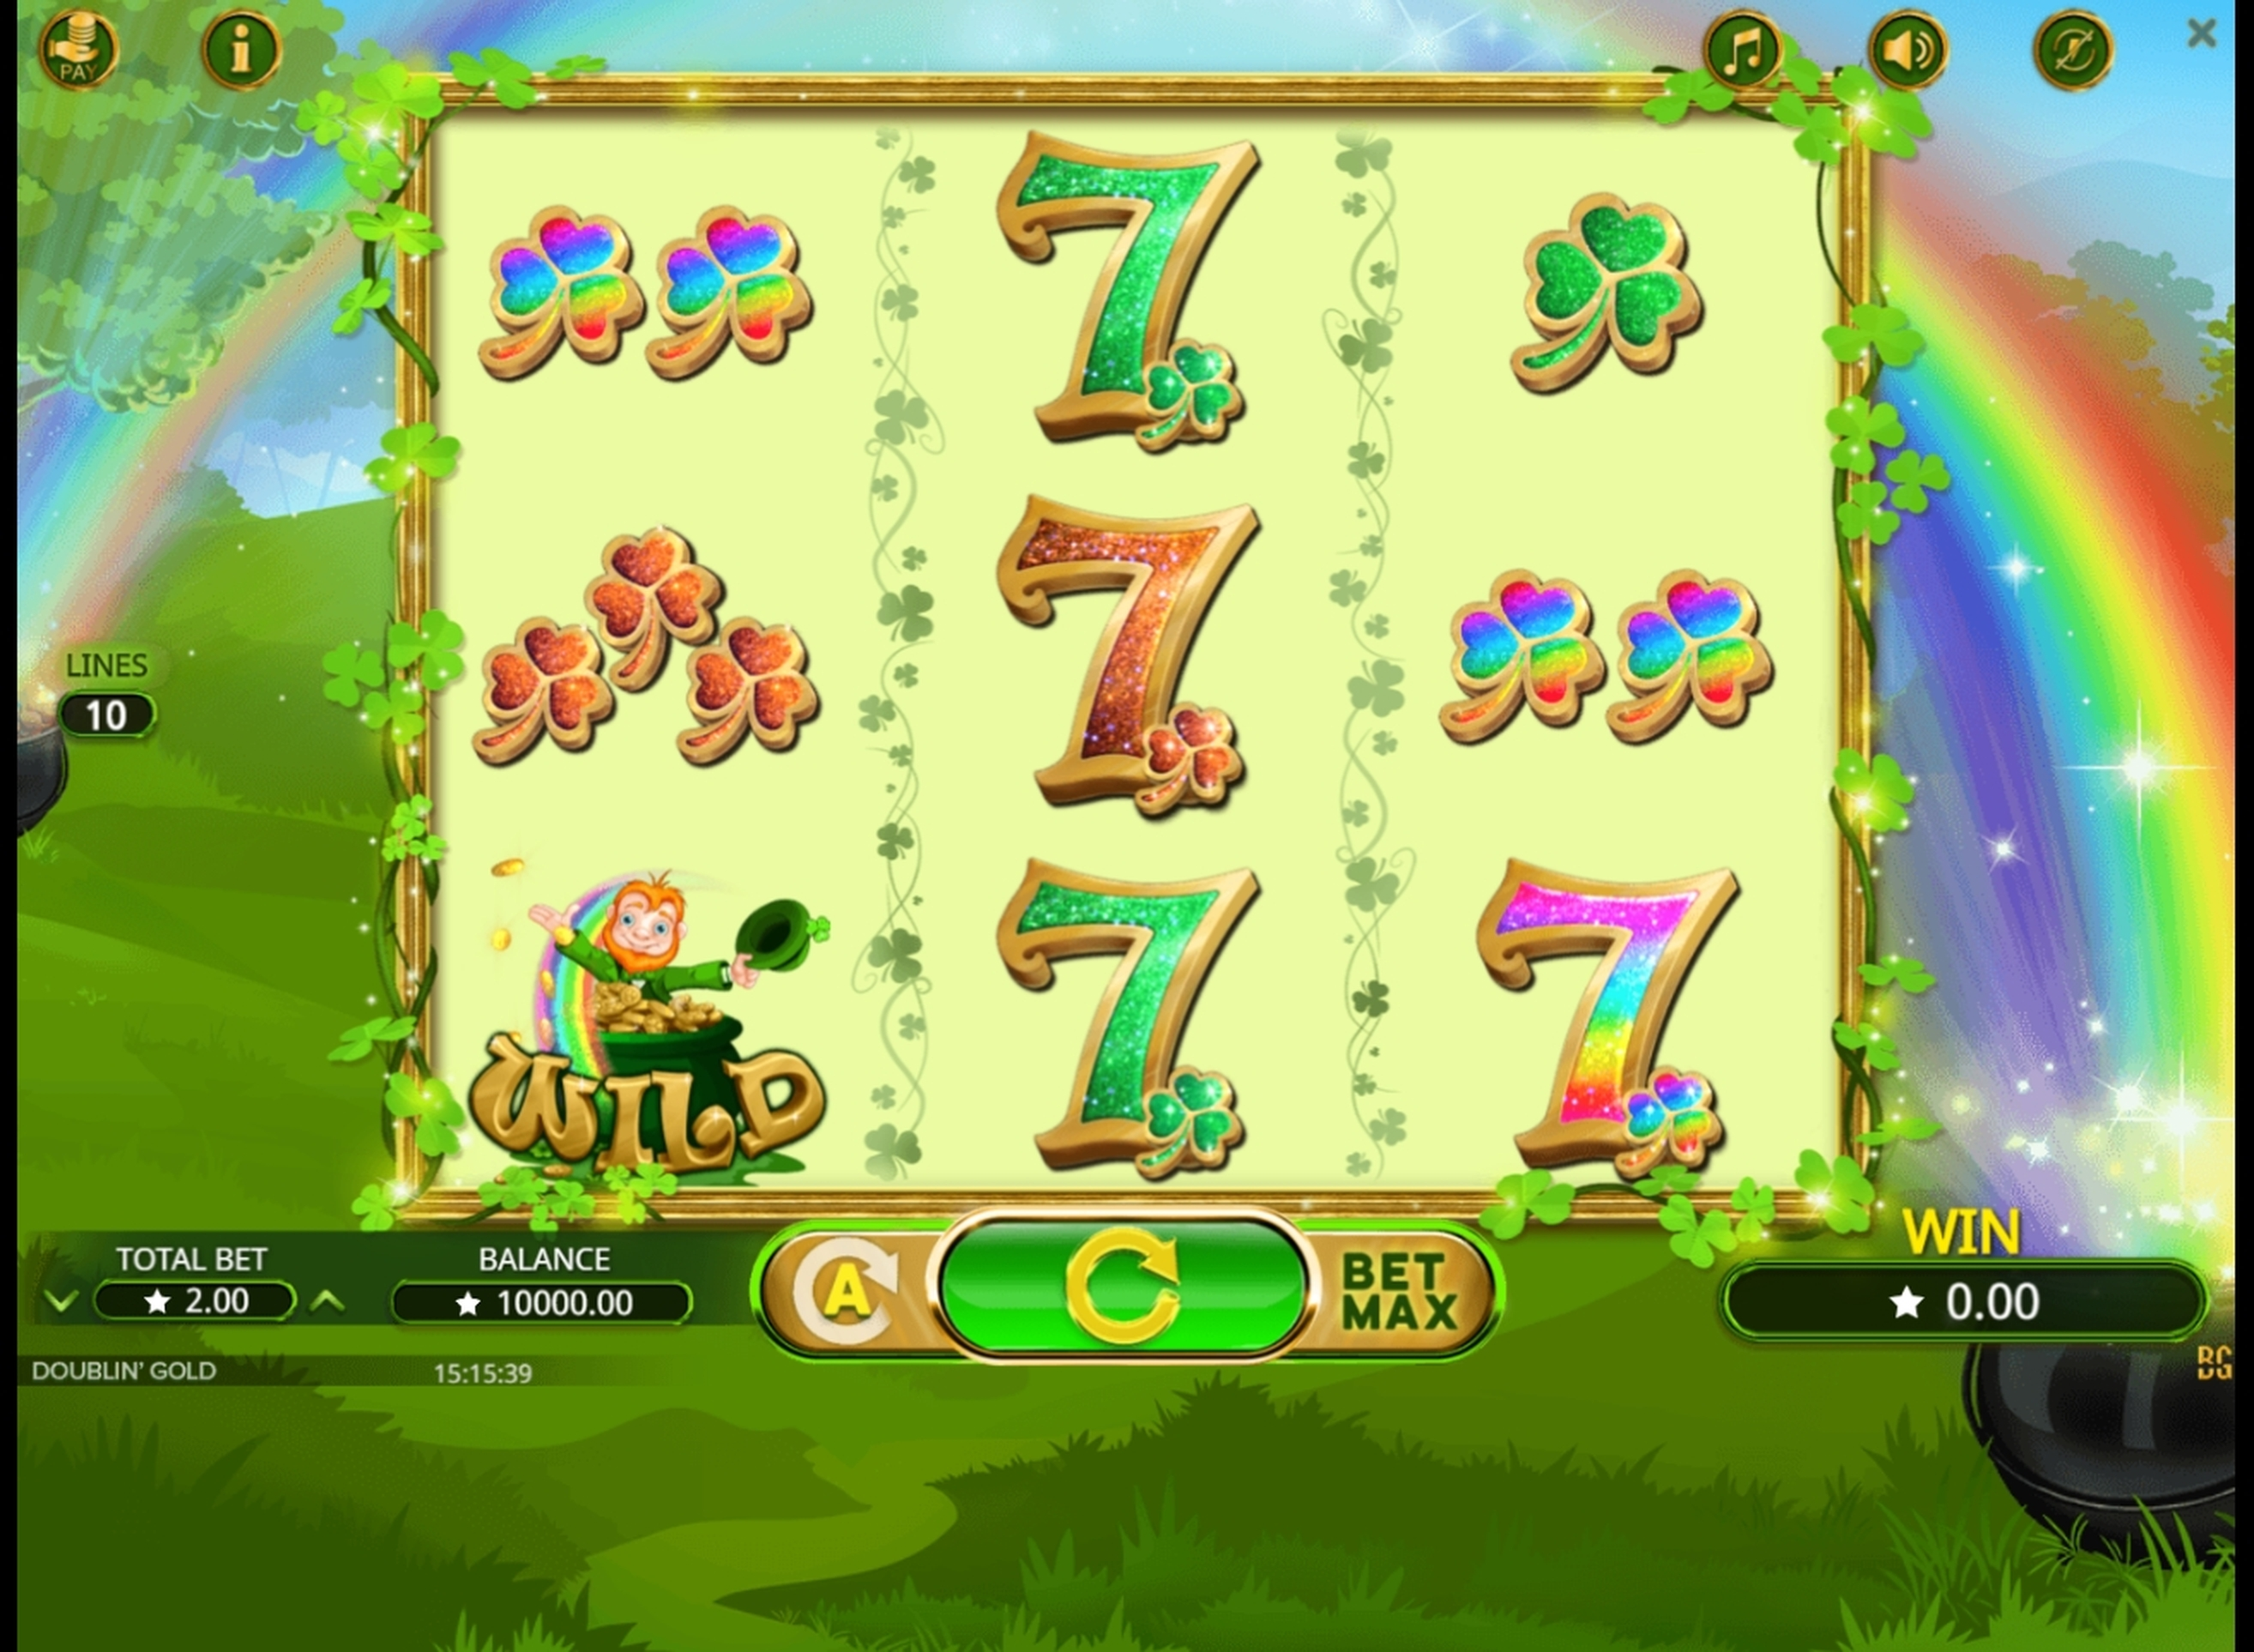 Reels in Doublin Gold Slot Game by Booming Games